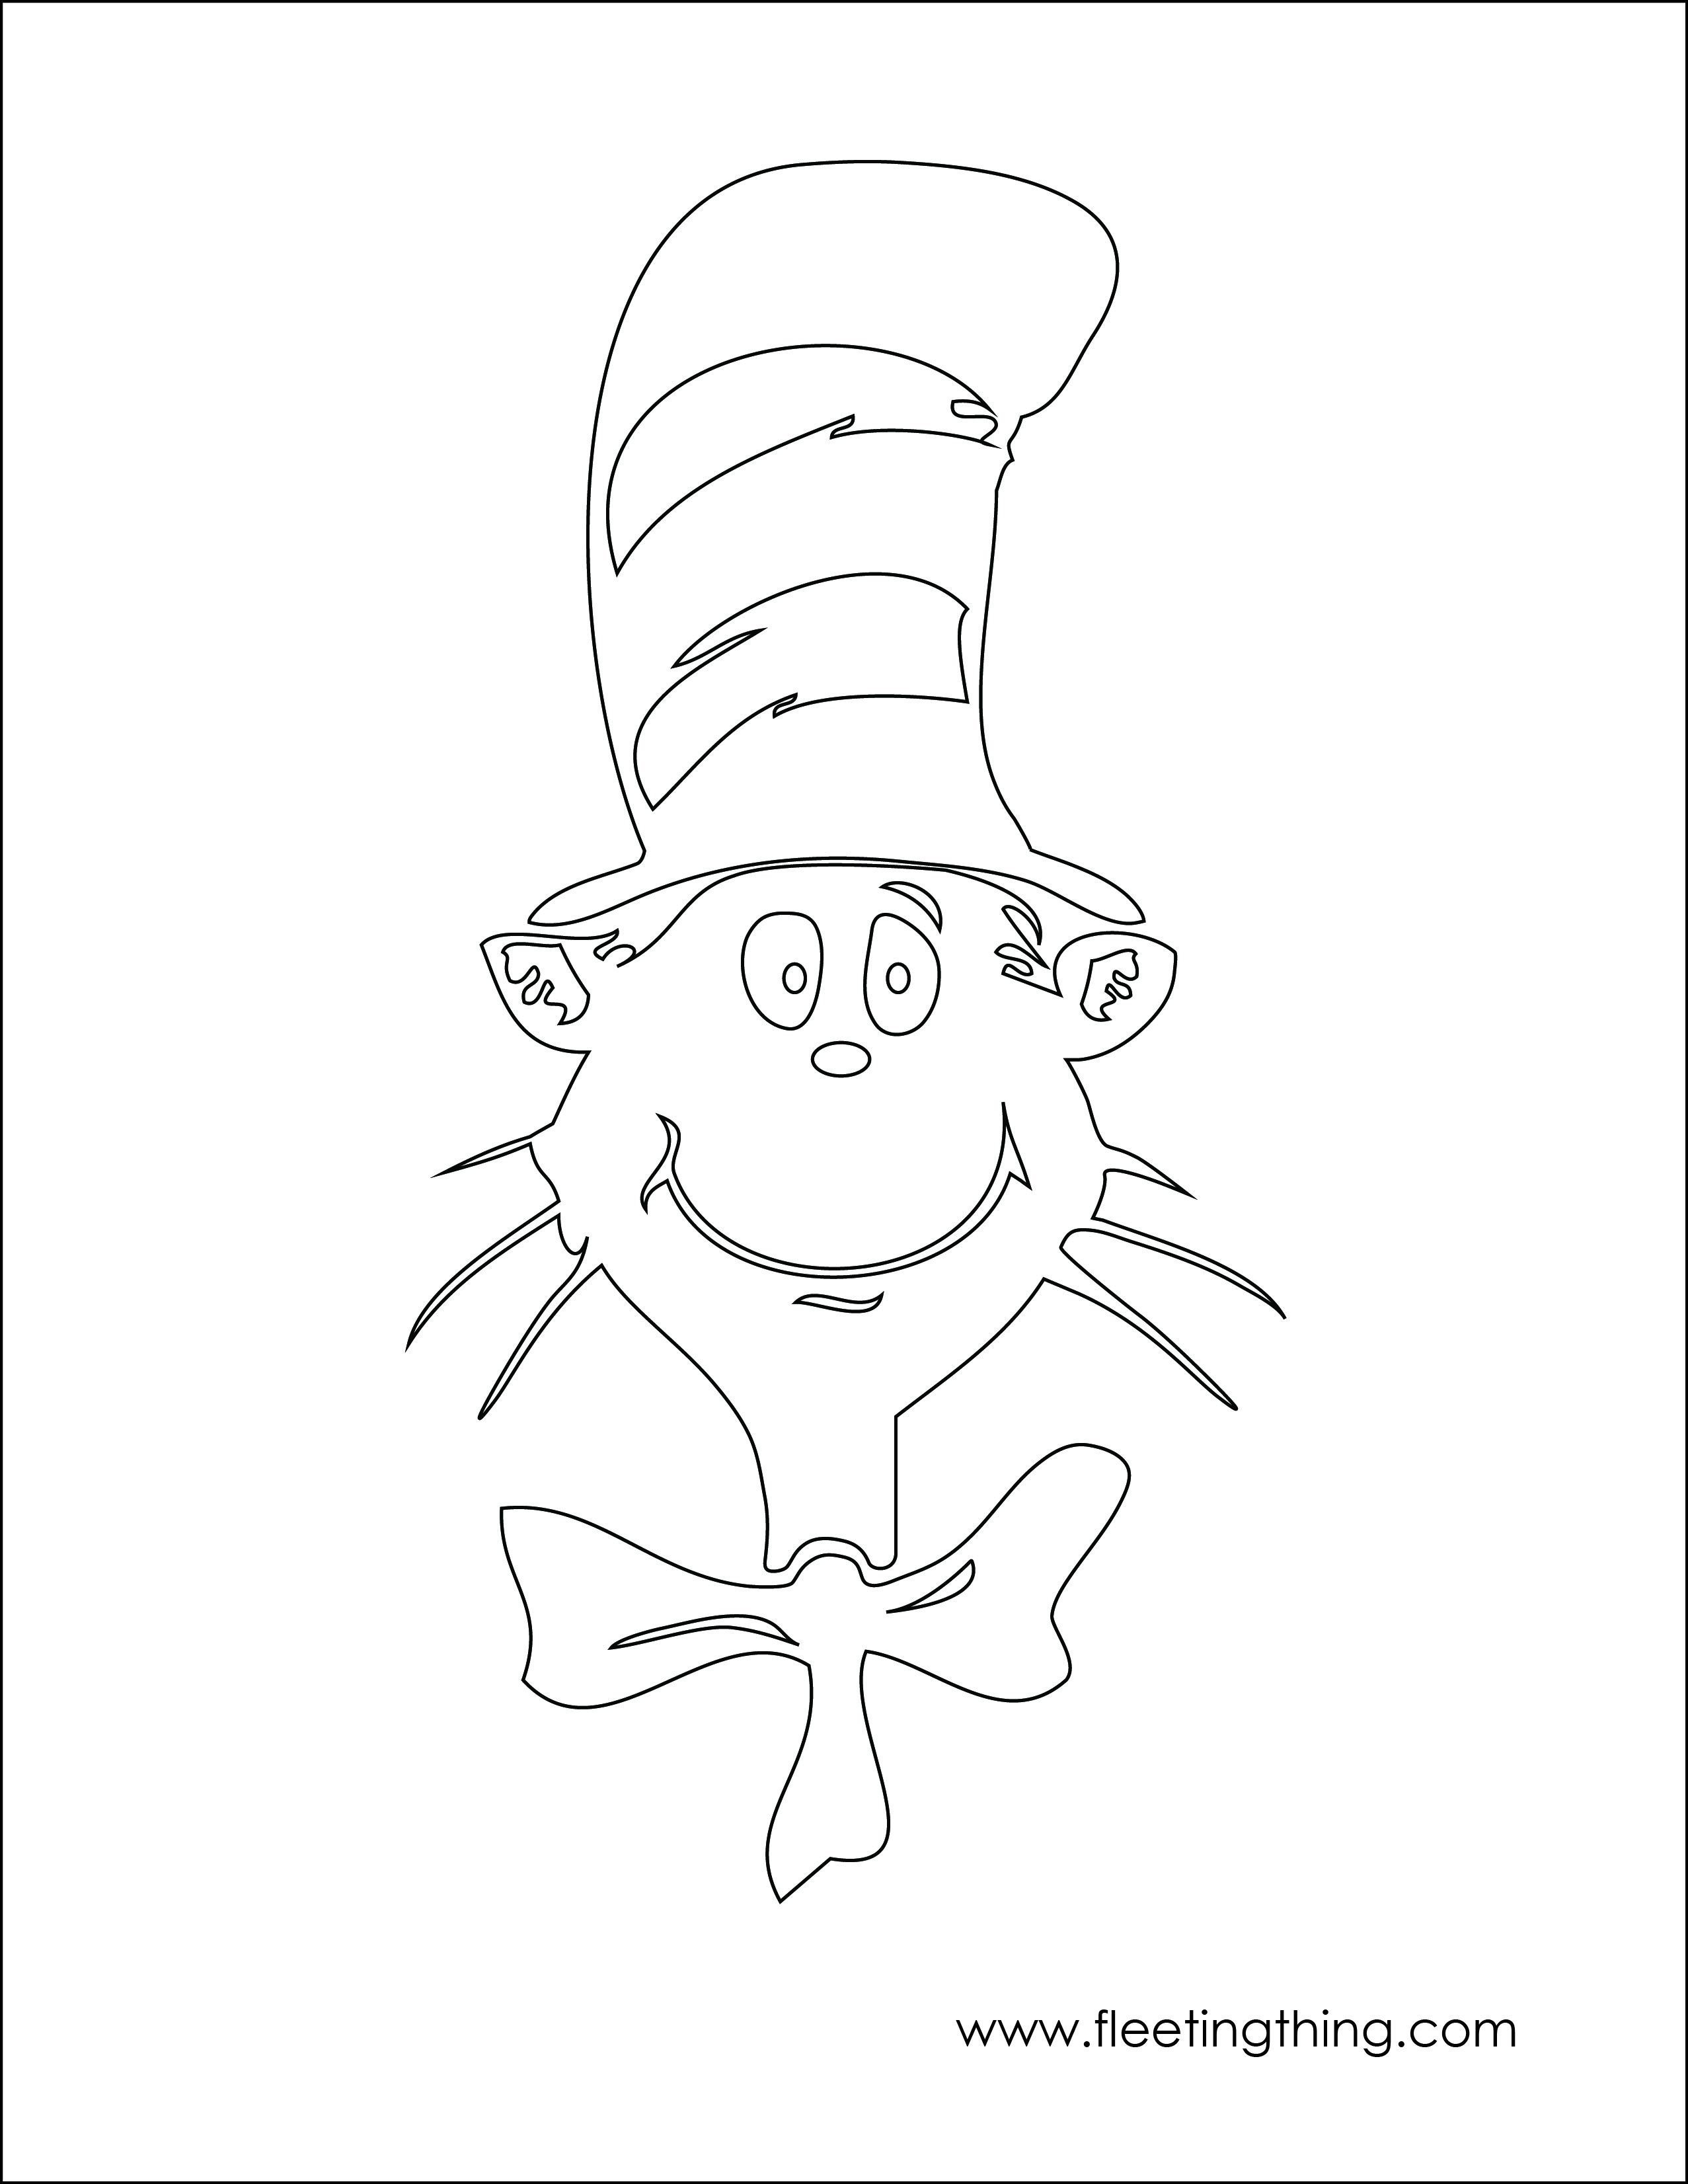 25 Coloring Pages Of Drseuss